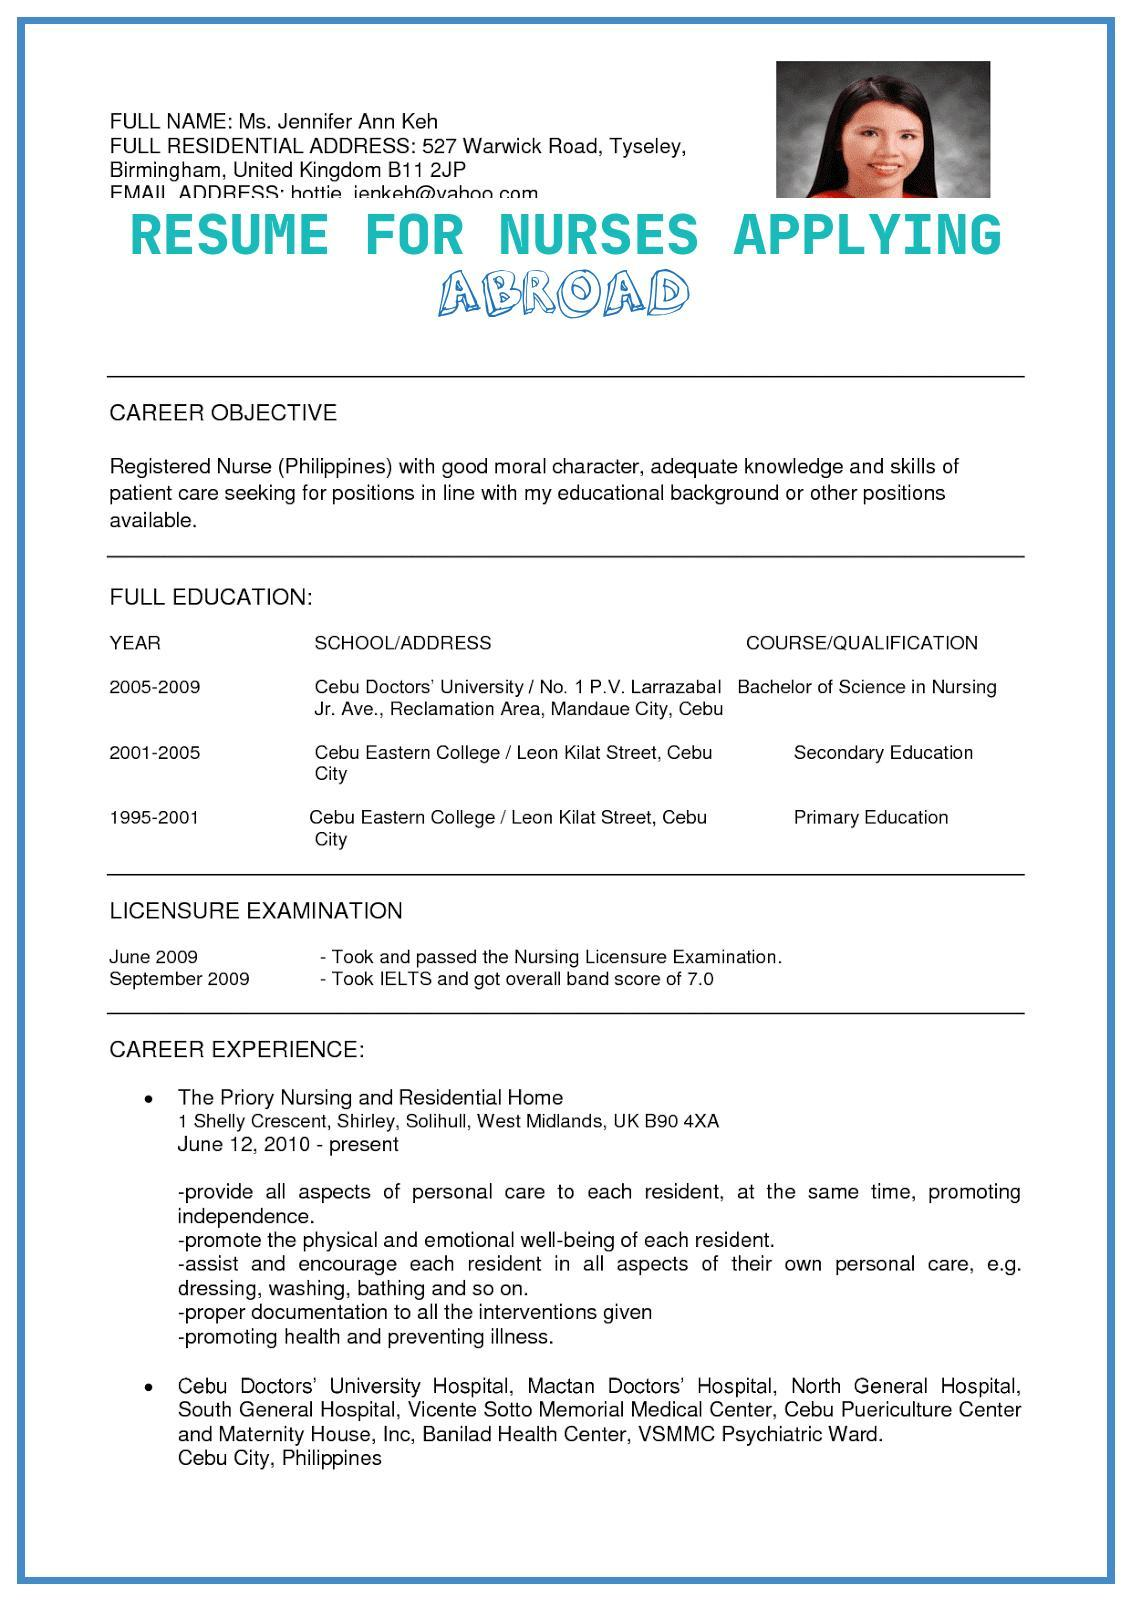 resume for nurses applying abroad free templates sample work of resumes pin template Resume Resume Sample For Work Abroad